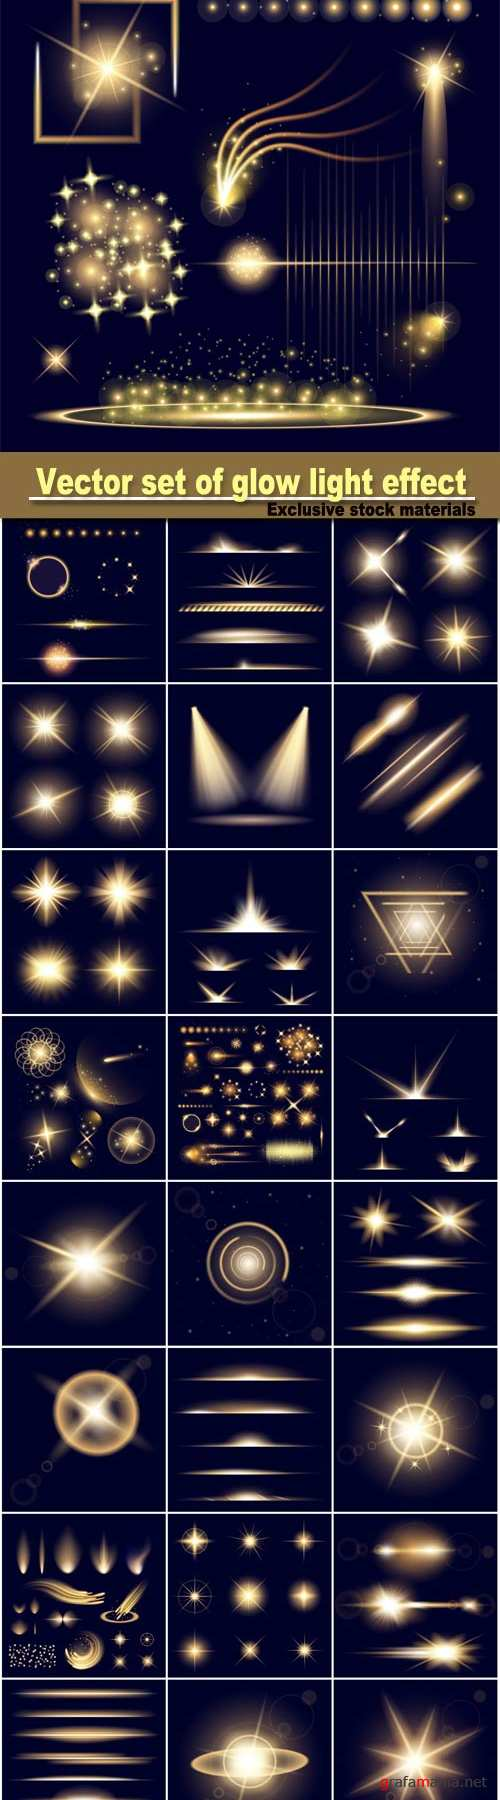 Vector set of glow light effect stars bursts with sparkles isolated on black background